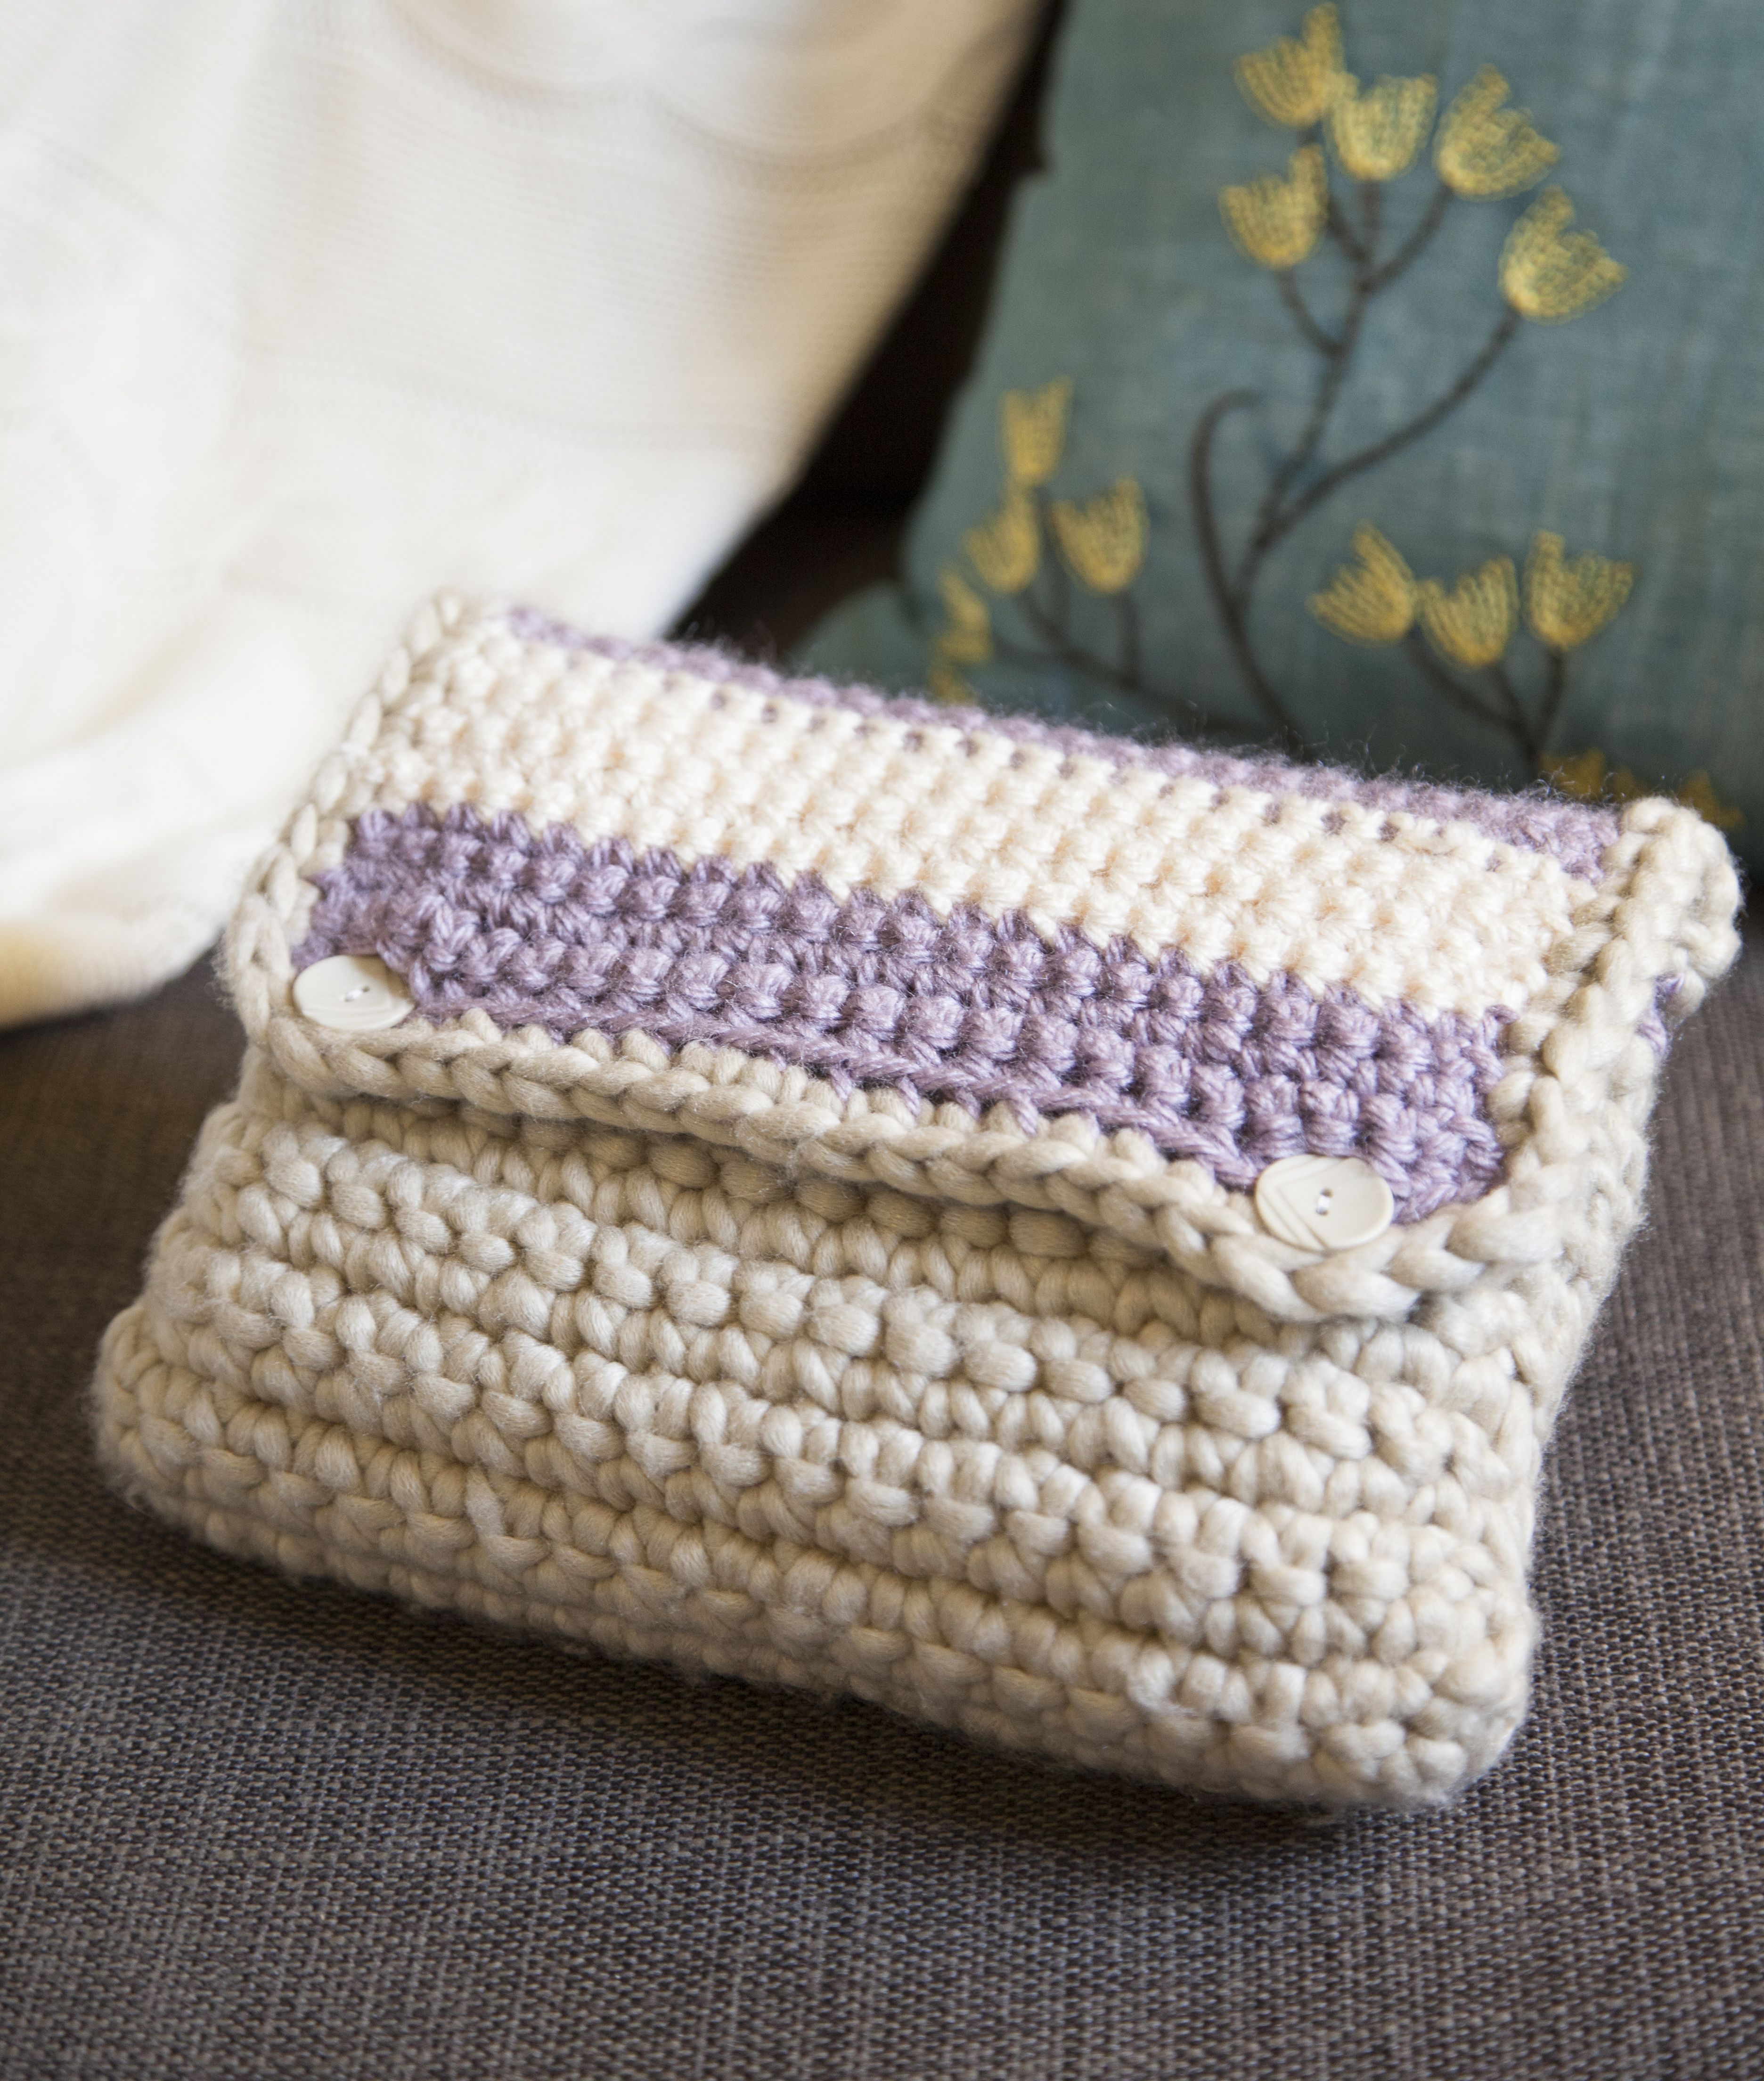 Crocheted Case grannysquaredontcare